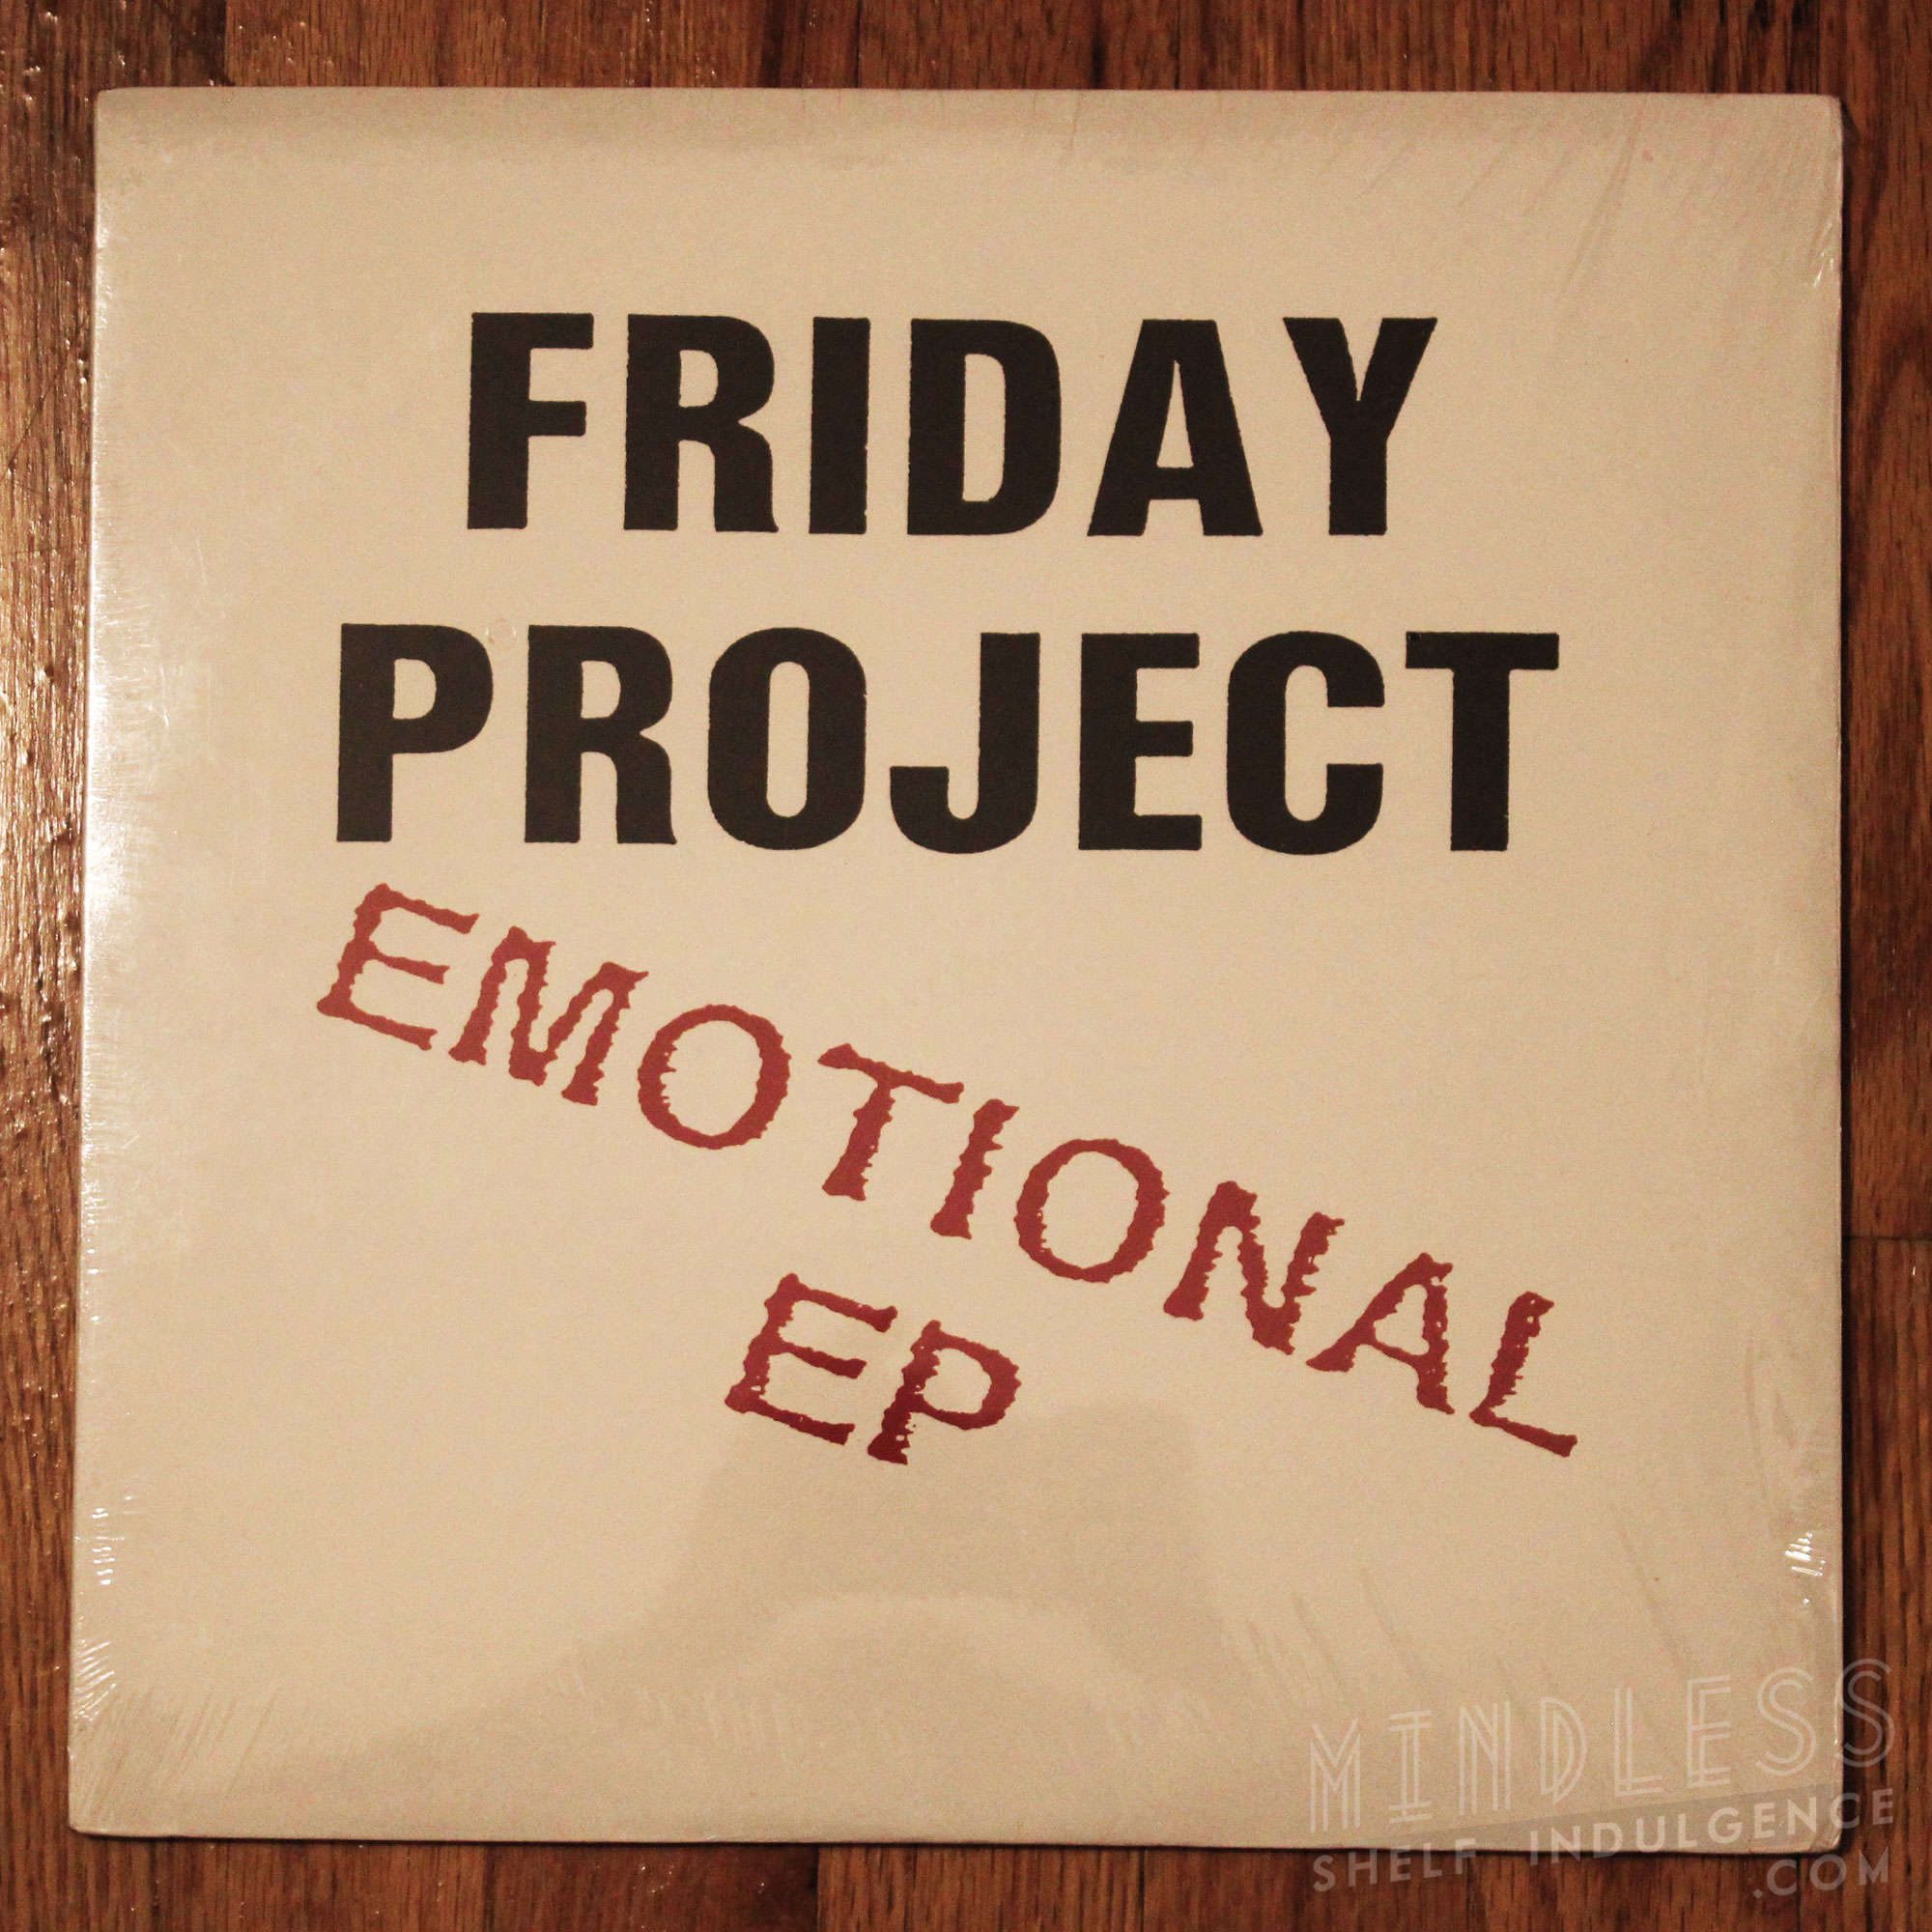 Friday Projects Emotional EP